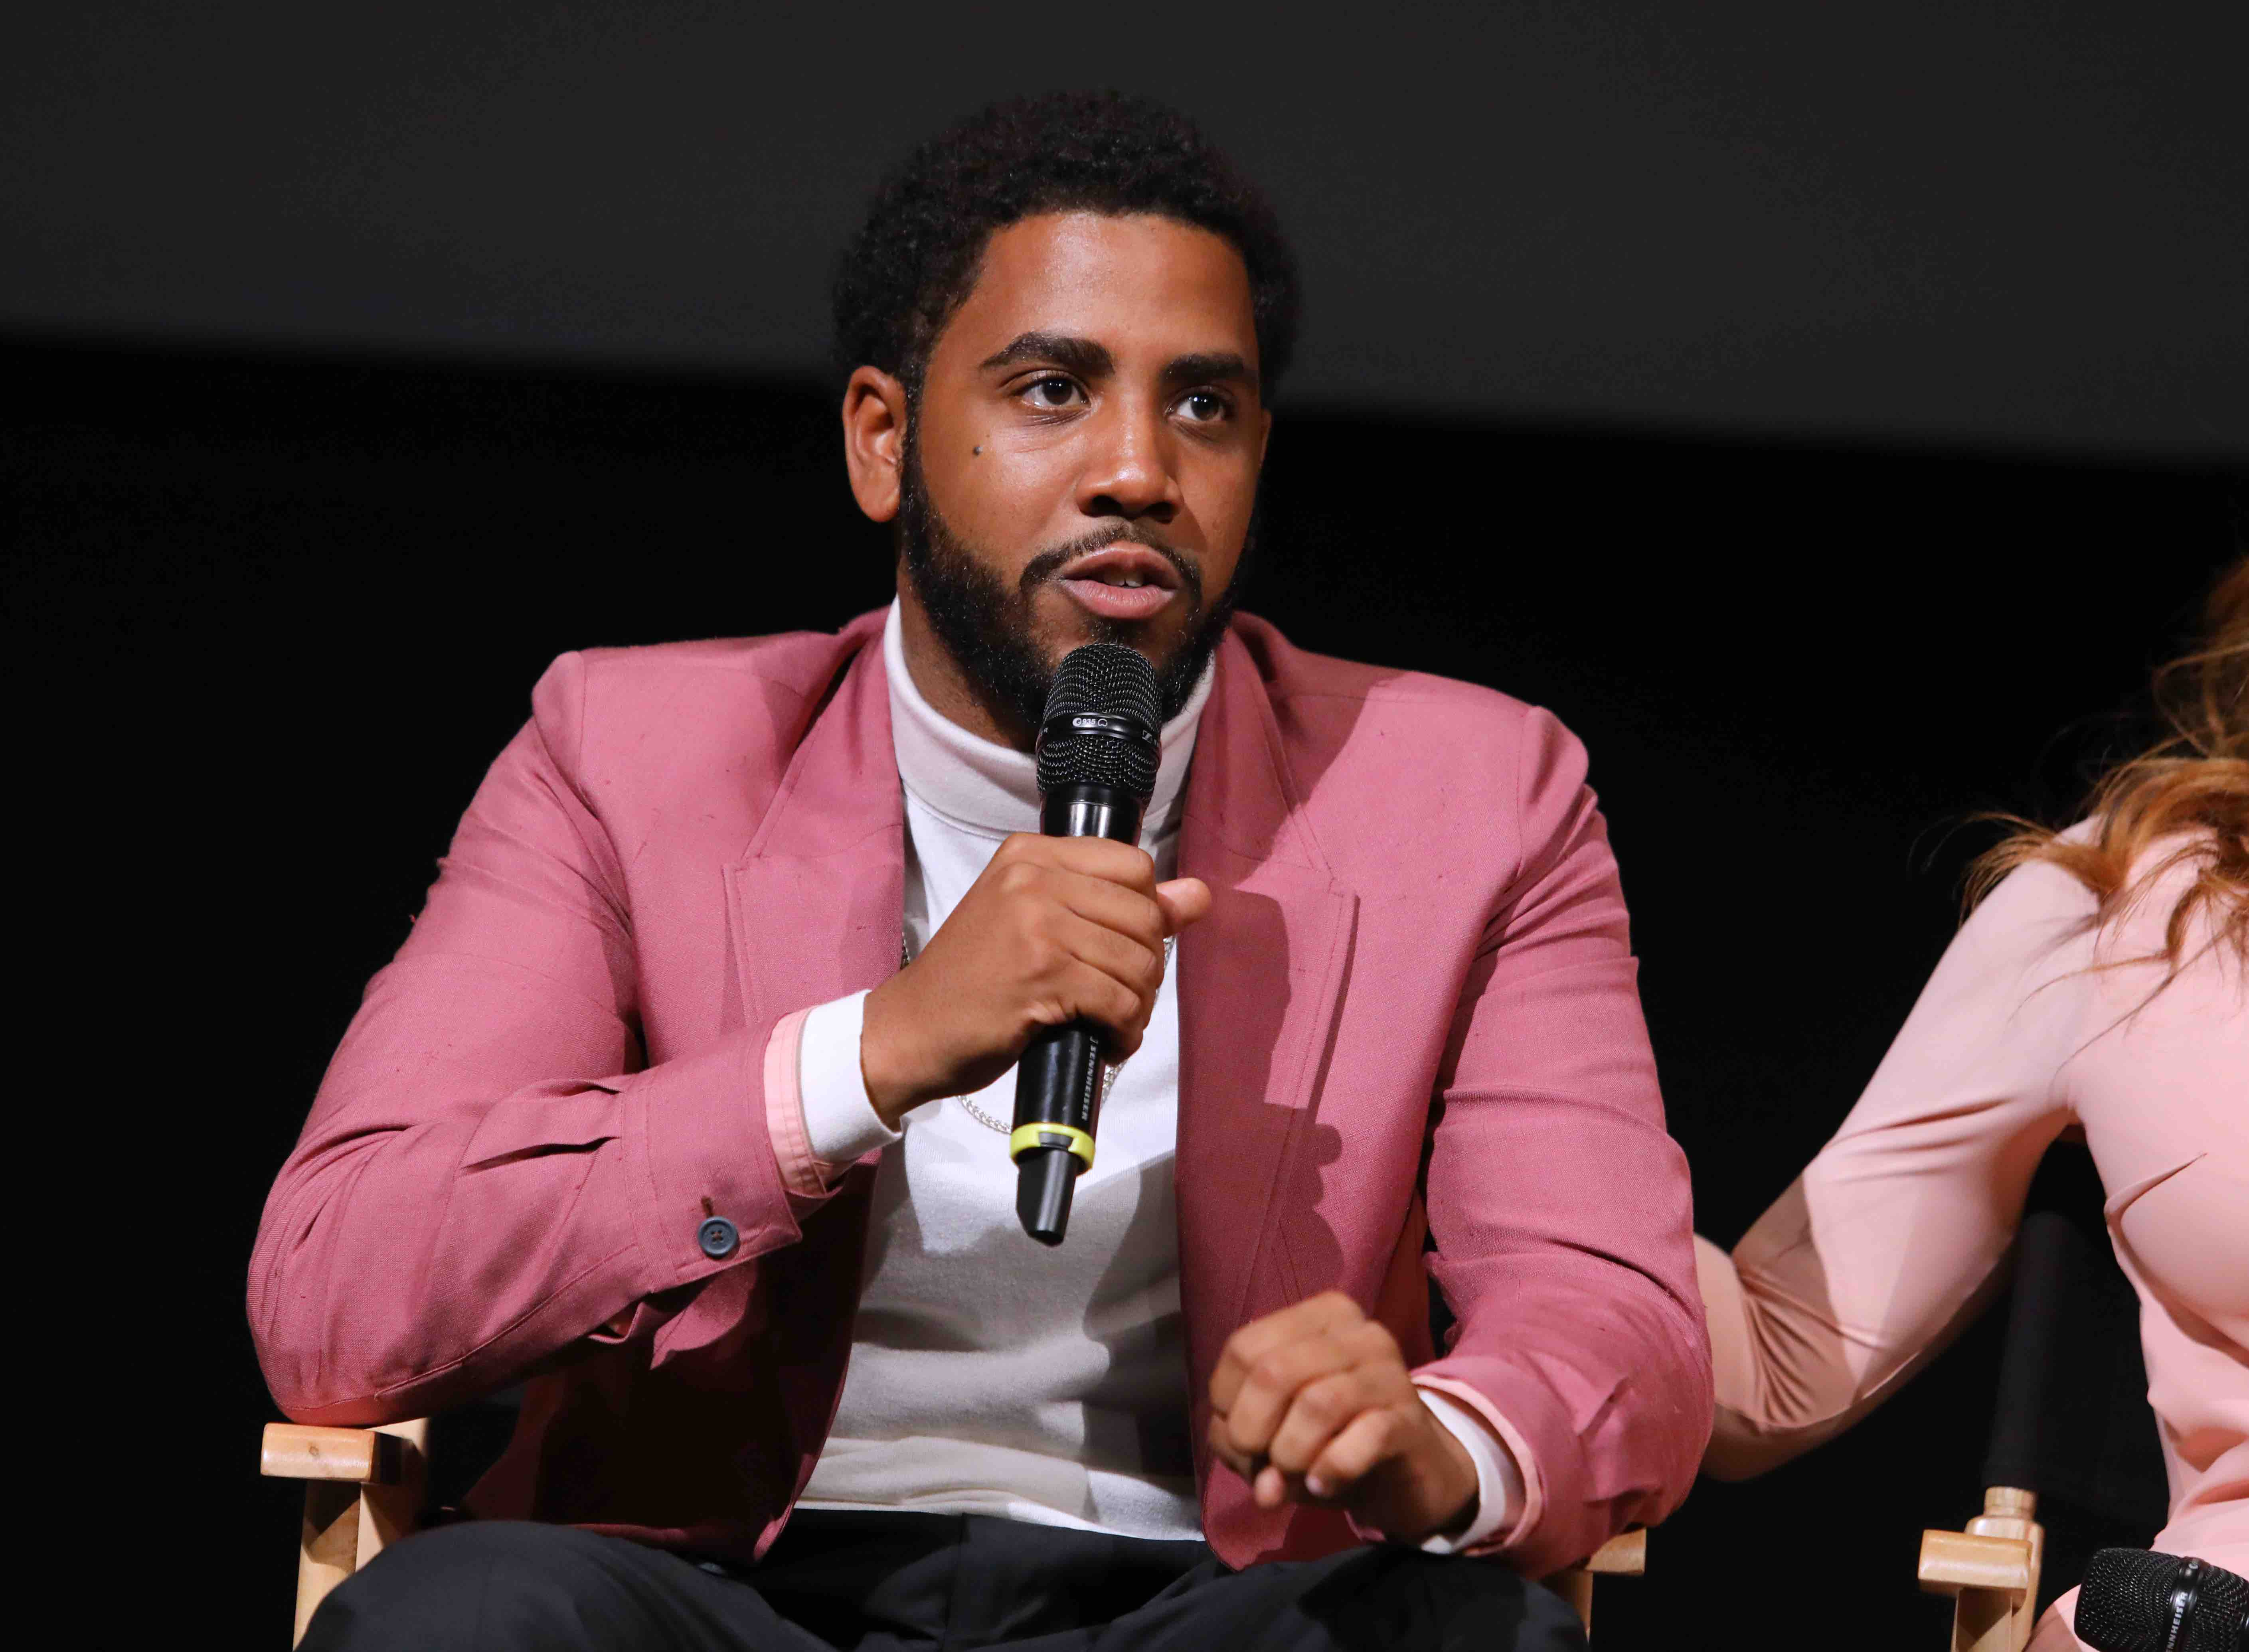 Emmy Winner Jharrel Jerome Rapping as Usnavi in High School Production of 'In the Heights' Is Adorable